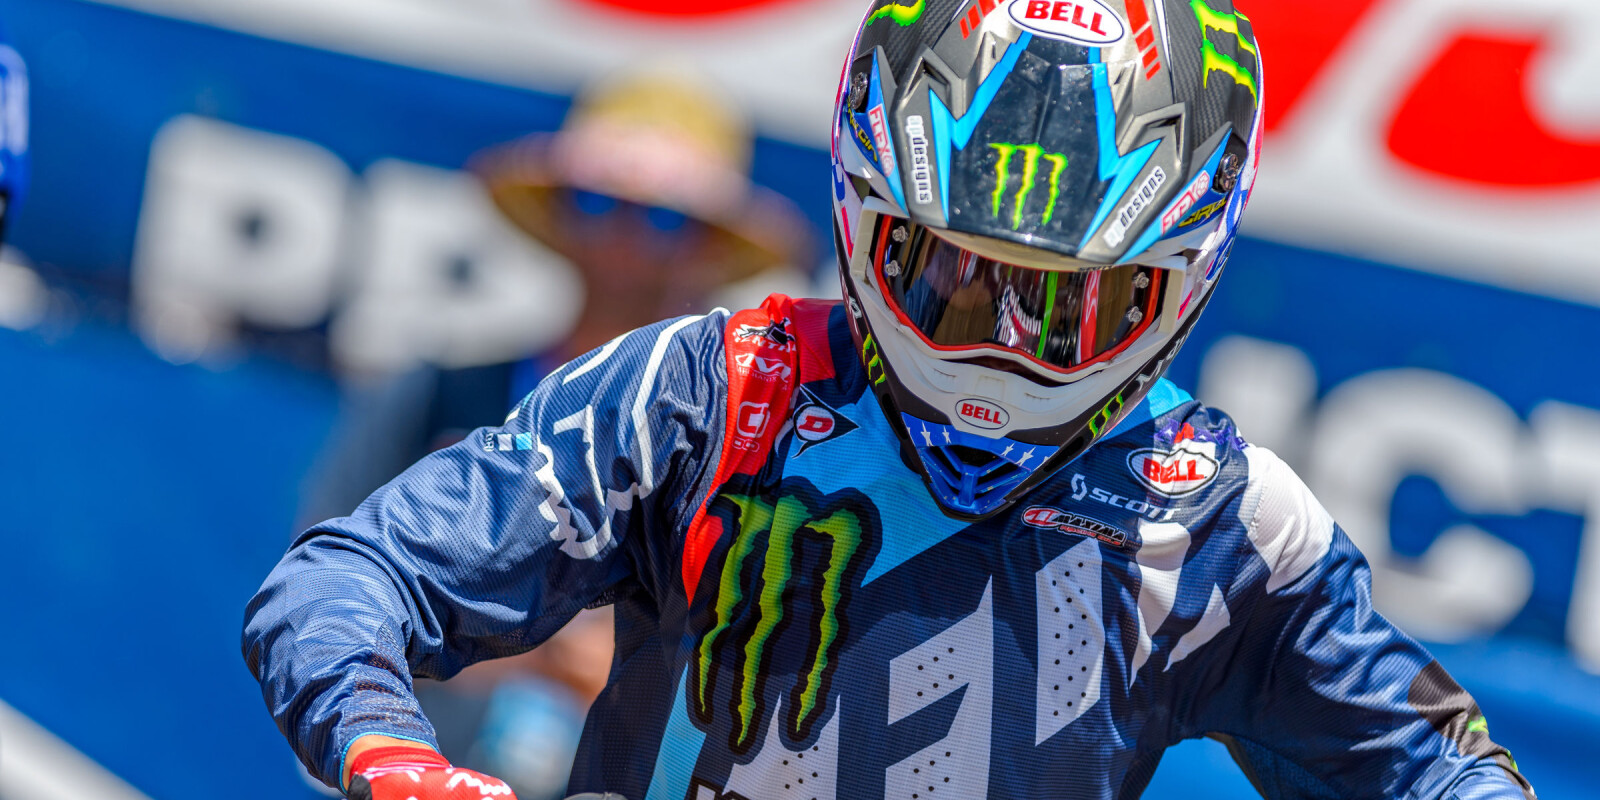 Monster Athletes compete in the 2017 Red Bud MX